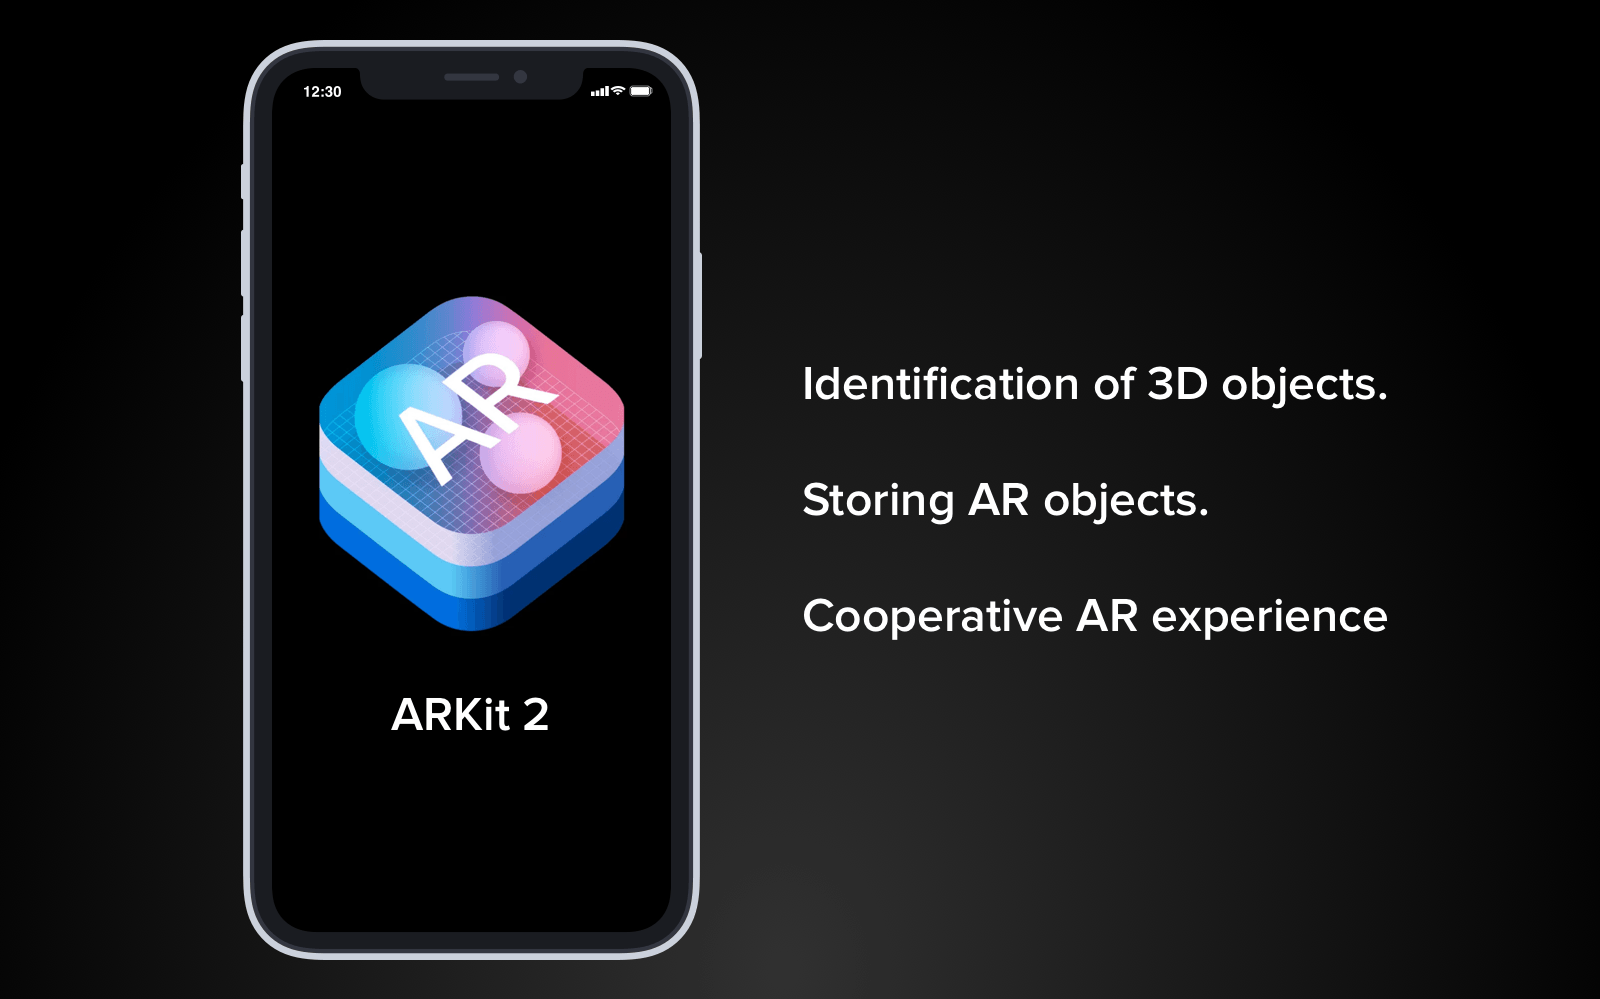 ARKit 2018 improvements for iOS 12